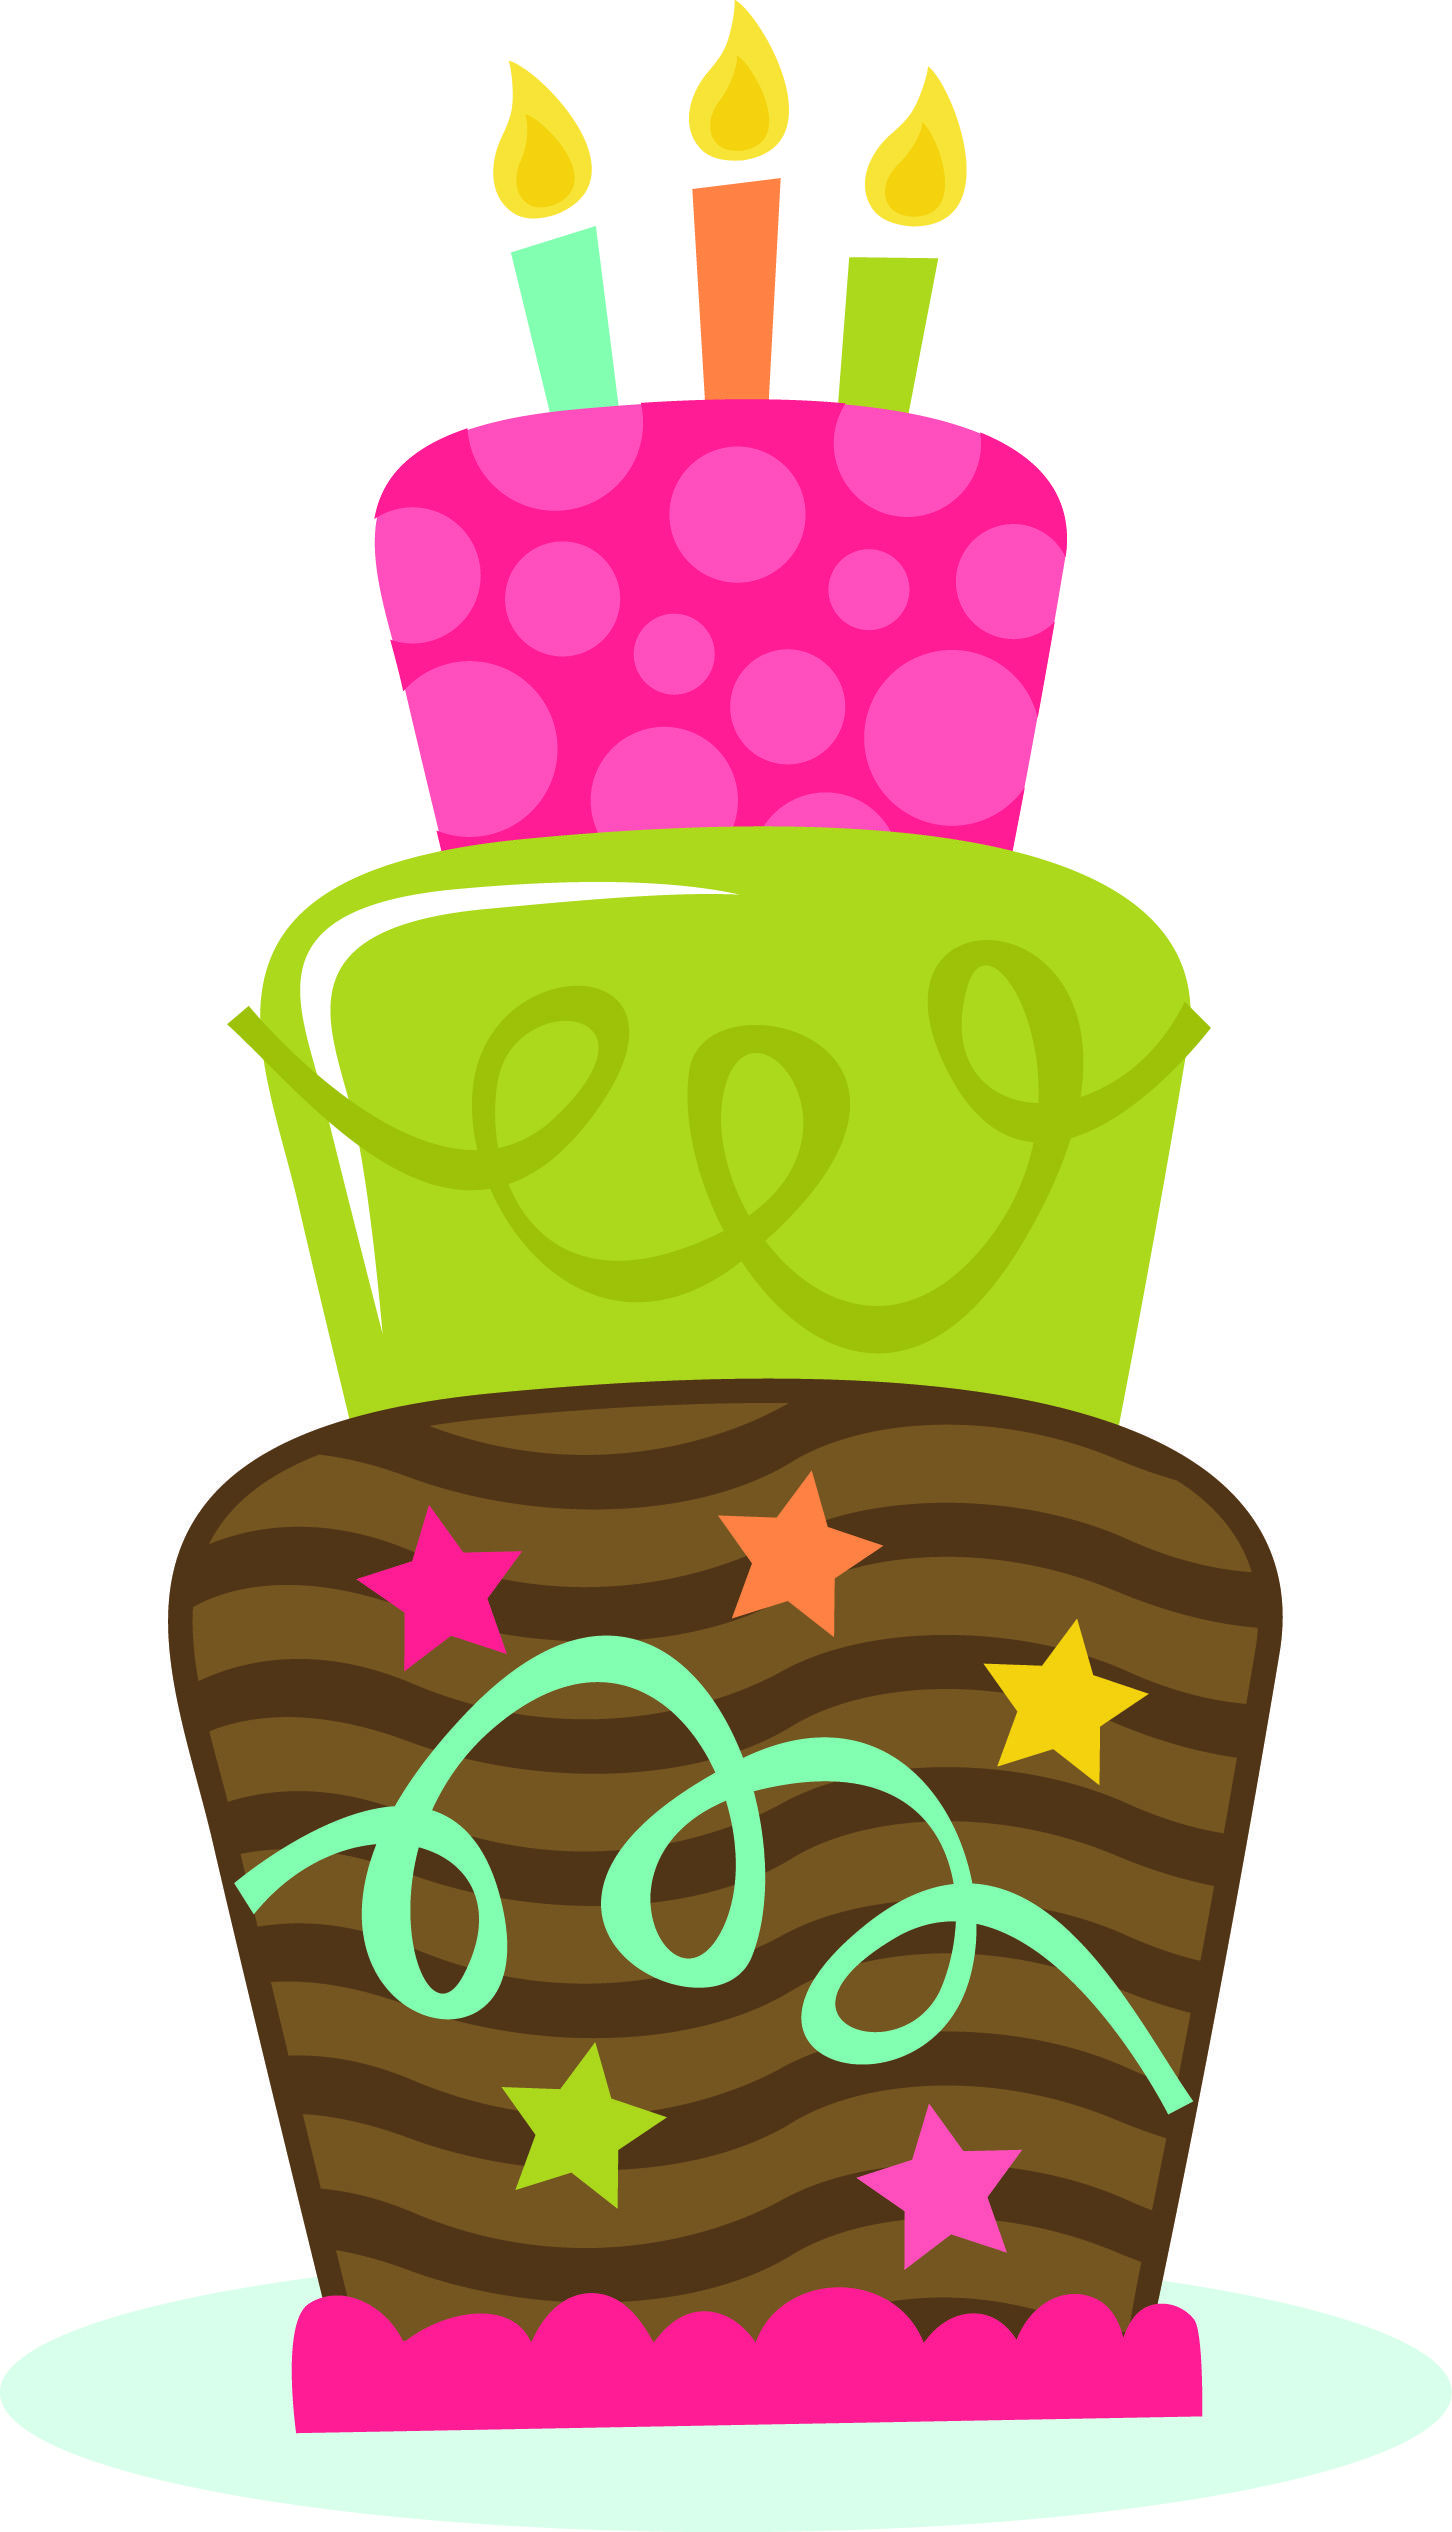 Miss kate cuttables clip. Bing clipart birthday cake